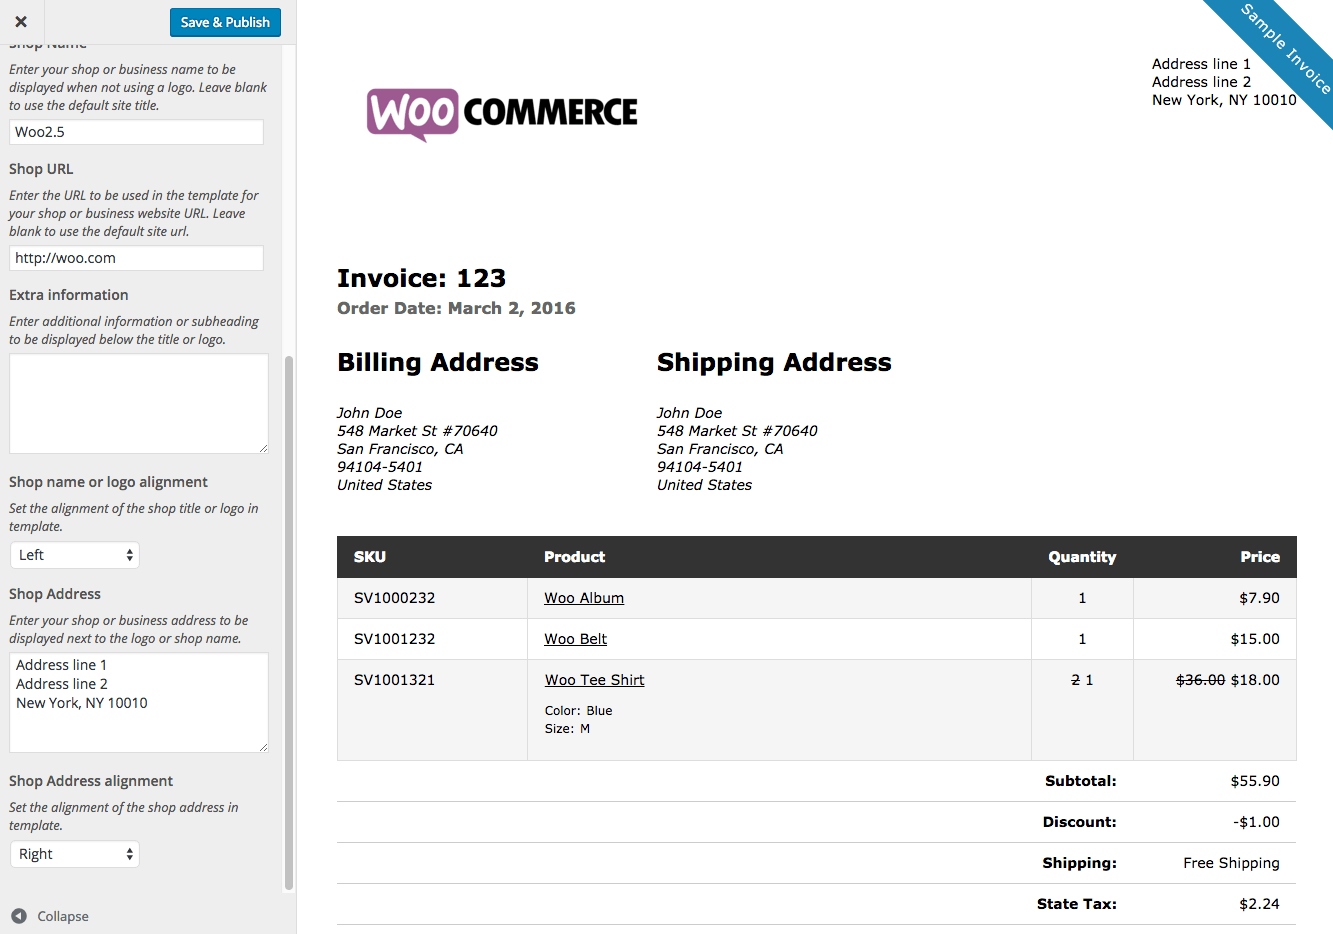 Maidofhonortoastus  Surprising Print Invoices Amp Packing Lists  Woocommerce With Inspiring Woocommerce Print Invoices  Packing Lists Customizer With Delectable Ups Customs Invoice Also Pay By Invoice In Addition Custom Carbon Copy Invoices And Blank Invoice Forms As Well As Edi Invoices Additionally Is An Invoice A Contract From Woocommercecom With Maidofhonortoastus  Inspiring Print Invoices Amp Packing Lists  Woocommerce With Delectable Woocommerce Print Invoices  Packing Lists Customizer And Surprising Ups Customs Invoice Also Pay By Invoice In Addition Custom Carbon Copy Invoices From Woocommercecom